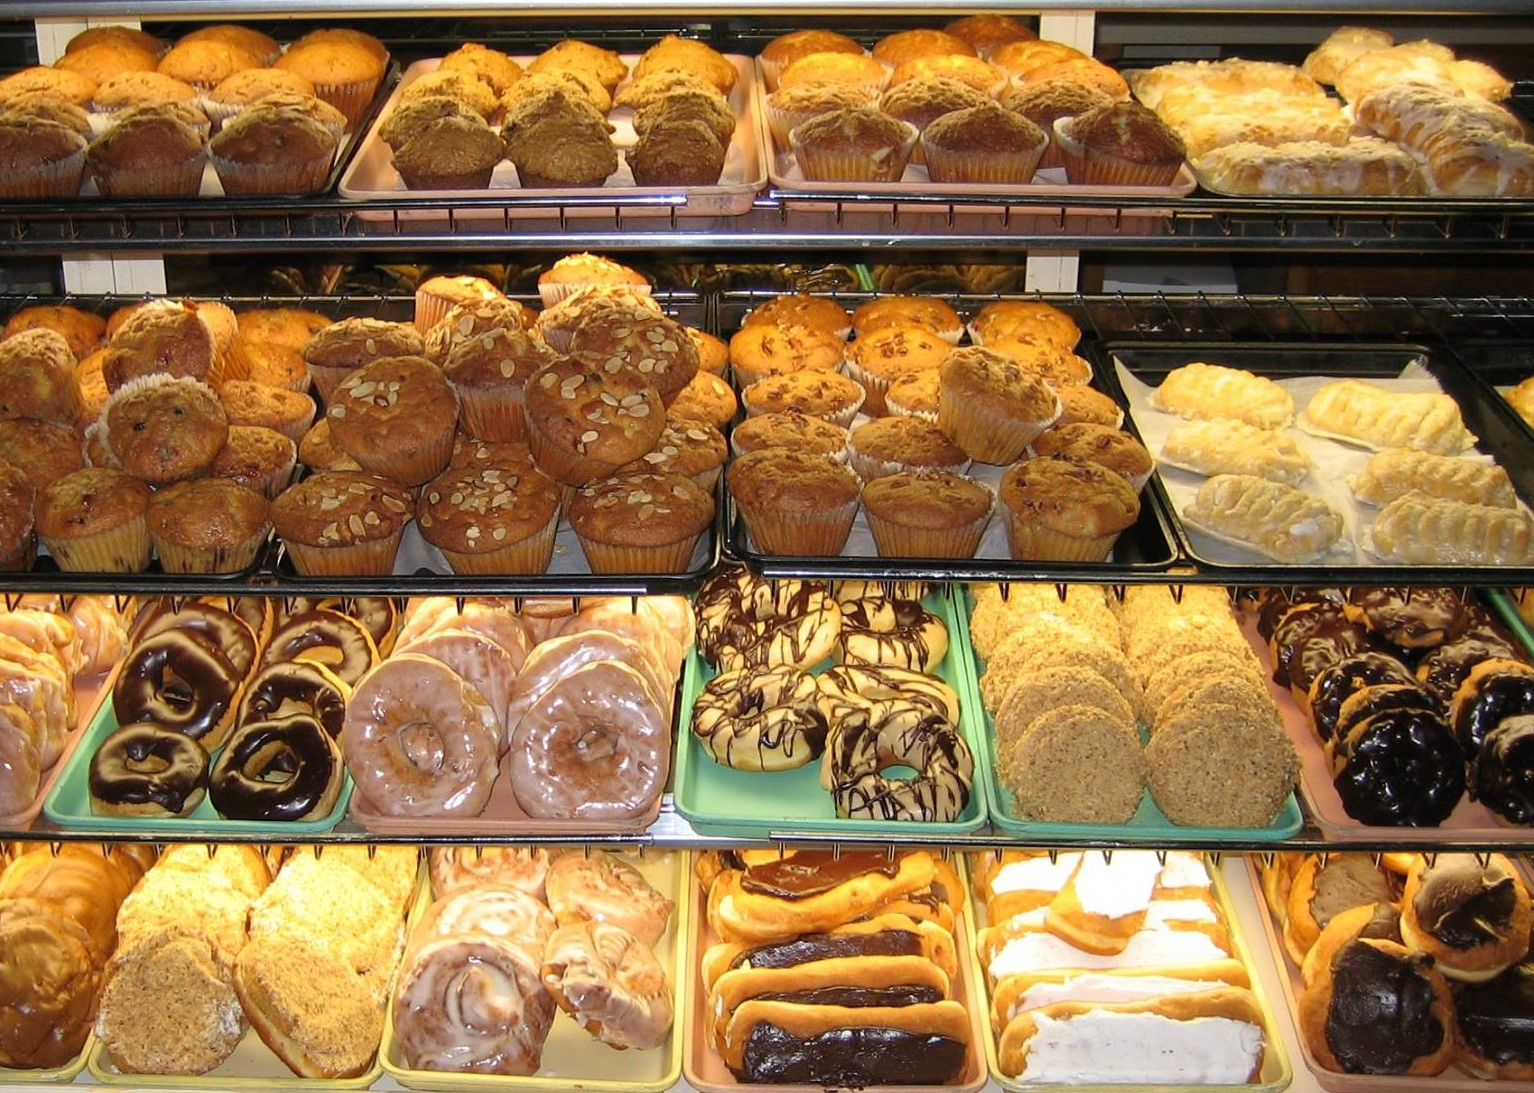 Pastry case filled with a variety of pastries including donuts, cookies, eclairs and muffins.